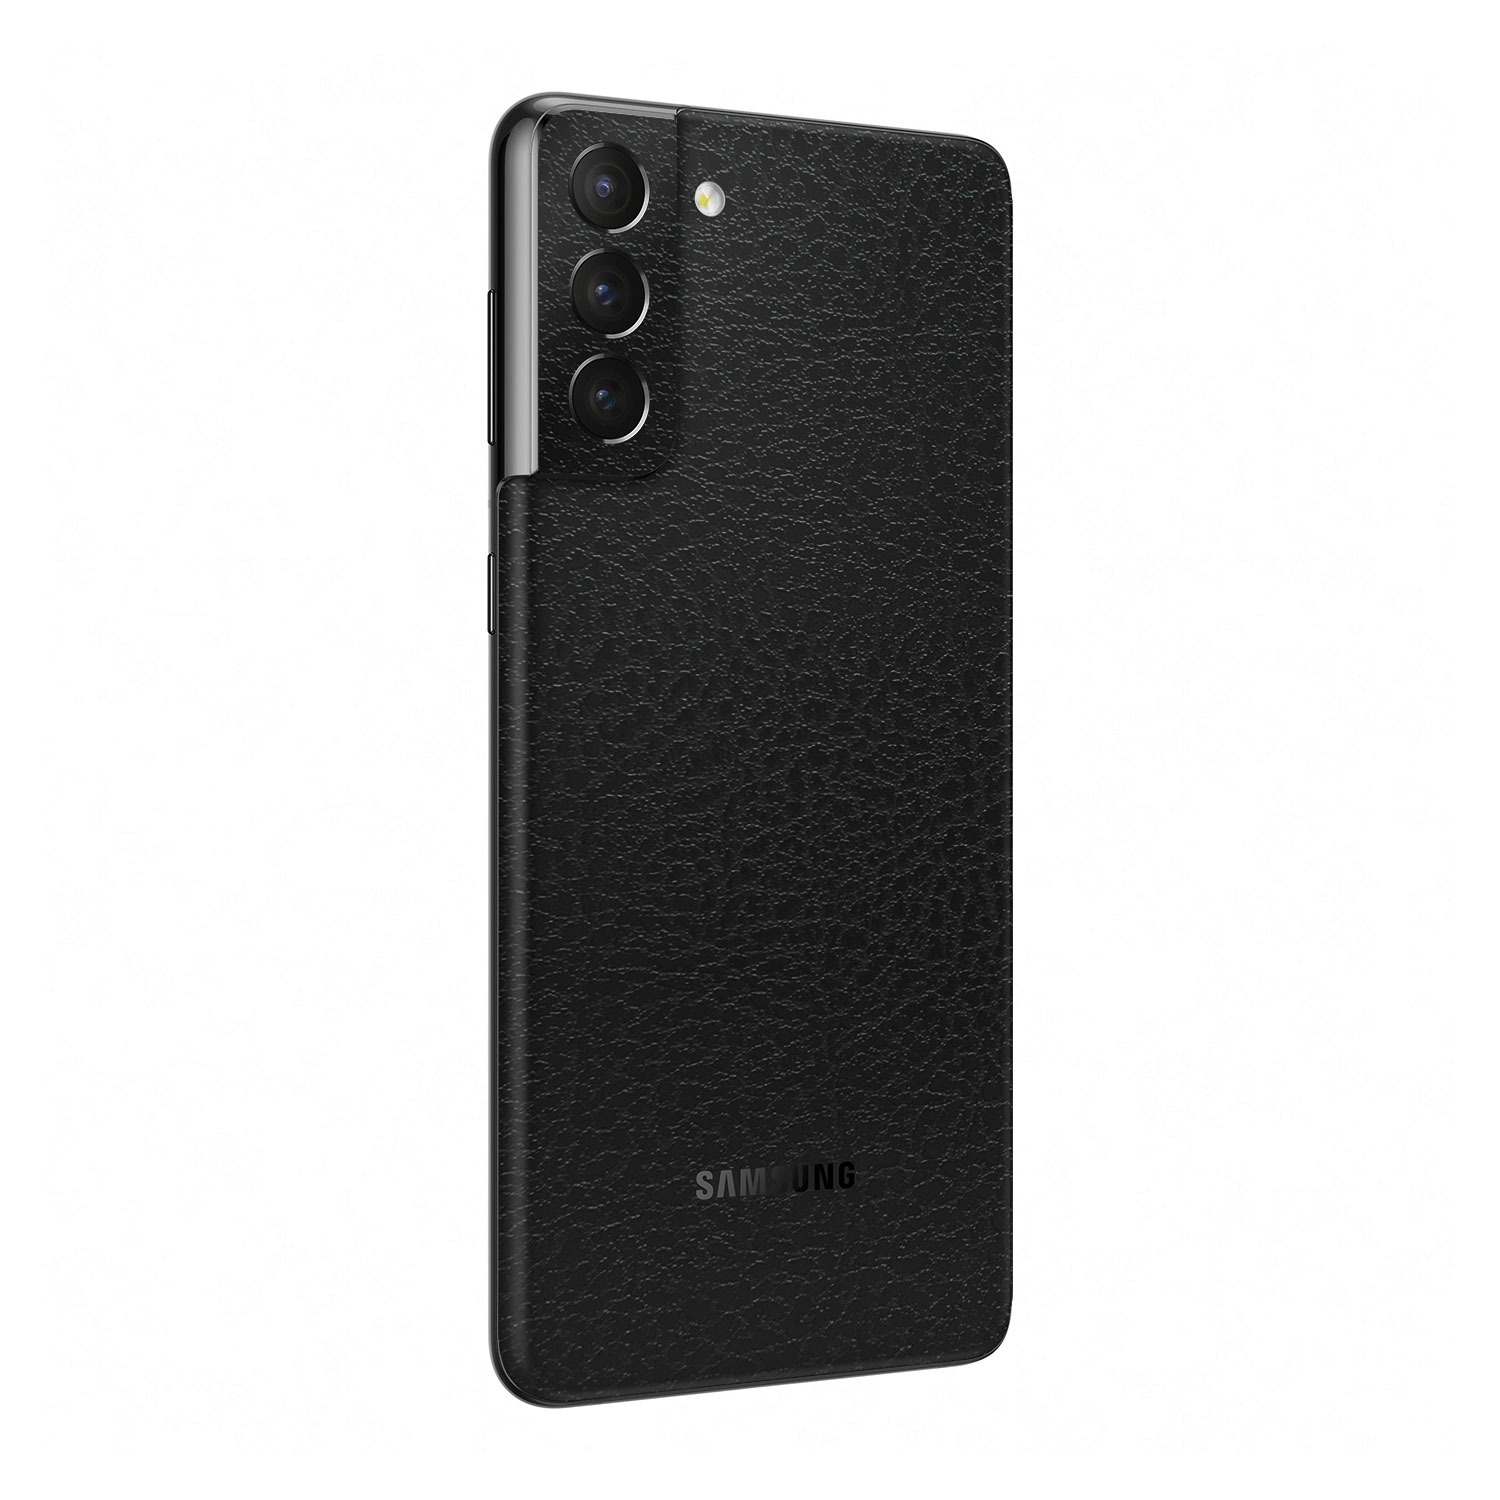 3M Textured Black Leather Skin For Samsung Galaxy S21 Plus